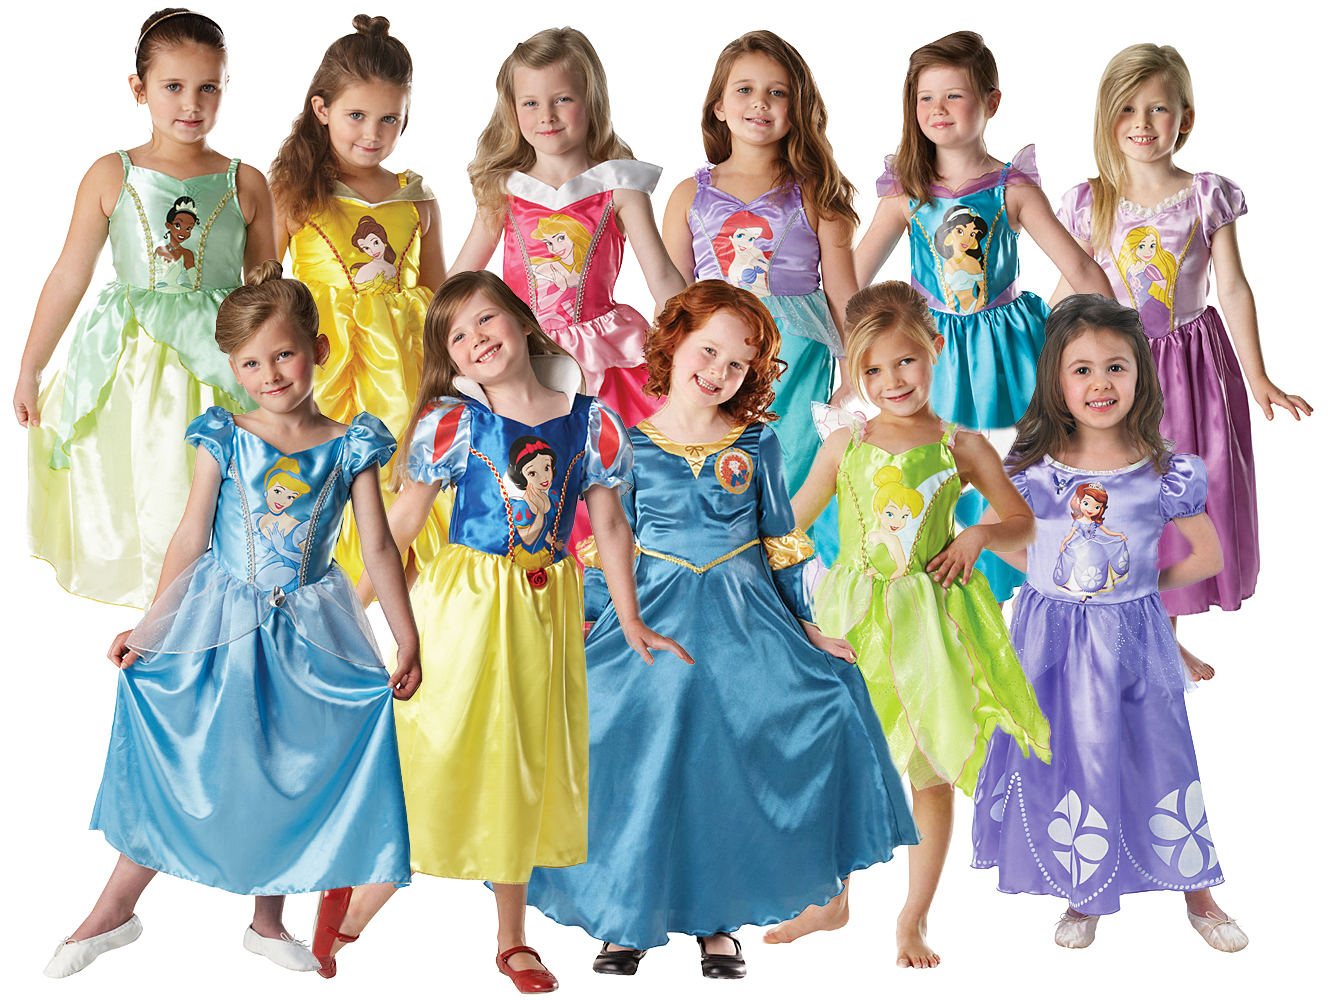 Dress to impress with Disney clothes. Shop for hoodies, shirts, denim, activewear, pajamas and more at Disney Store. Disney Princess Costume Collection for Kids. Disney Princess Costume Collection for Kids. $ - $ $ - $ Pizza Planet Logo Tee for Men - Toy Story.